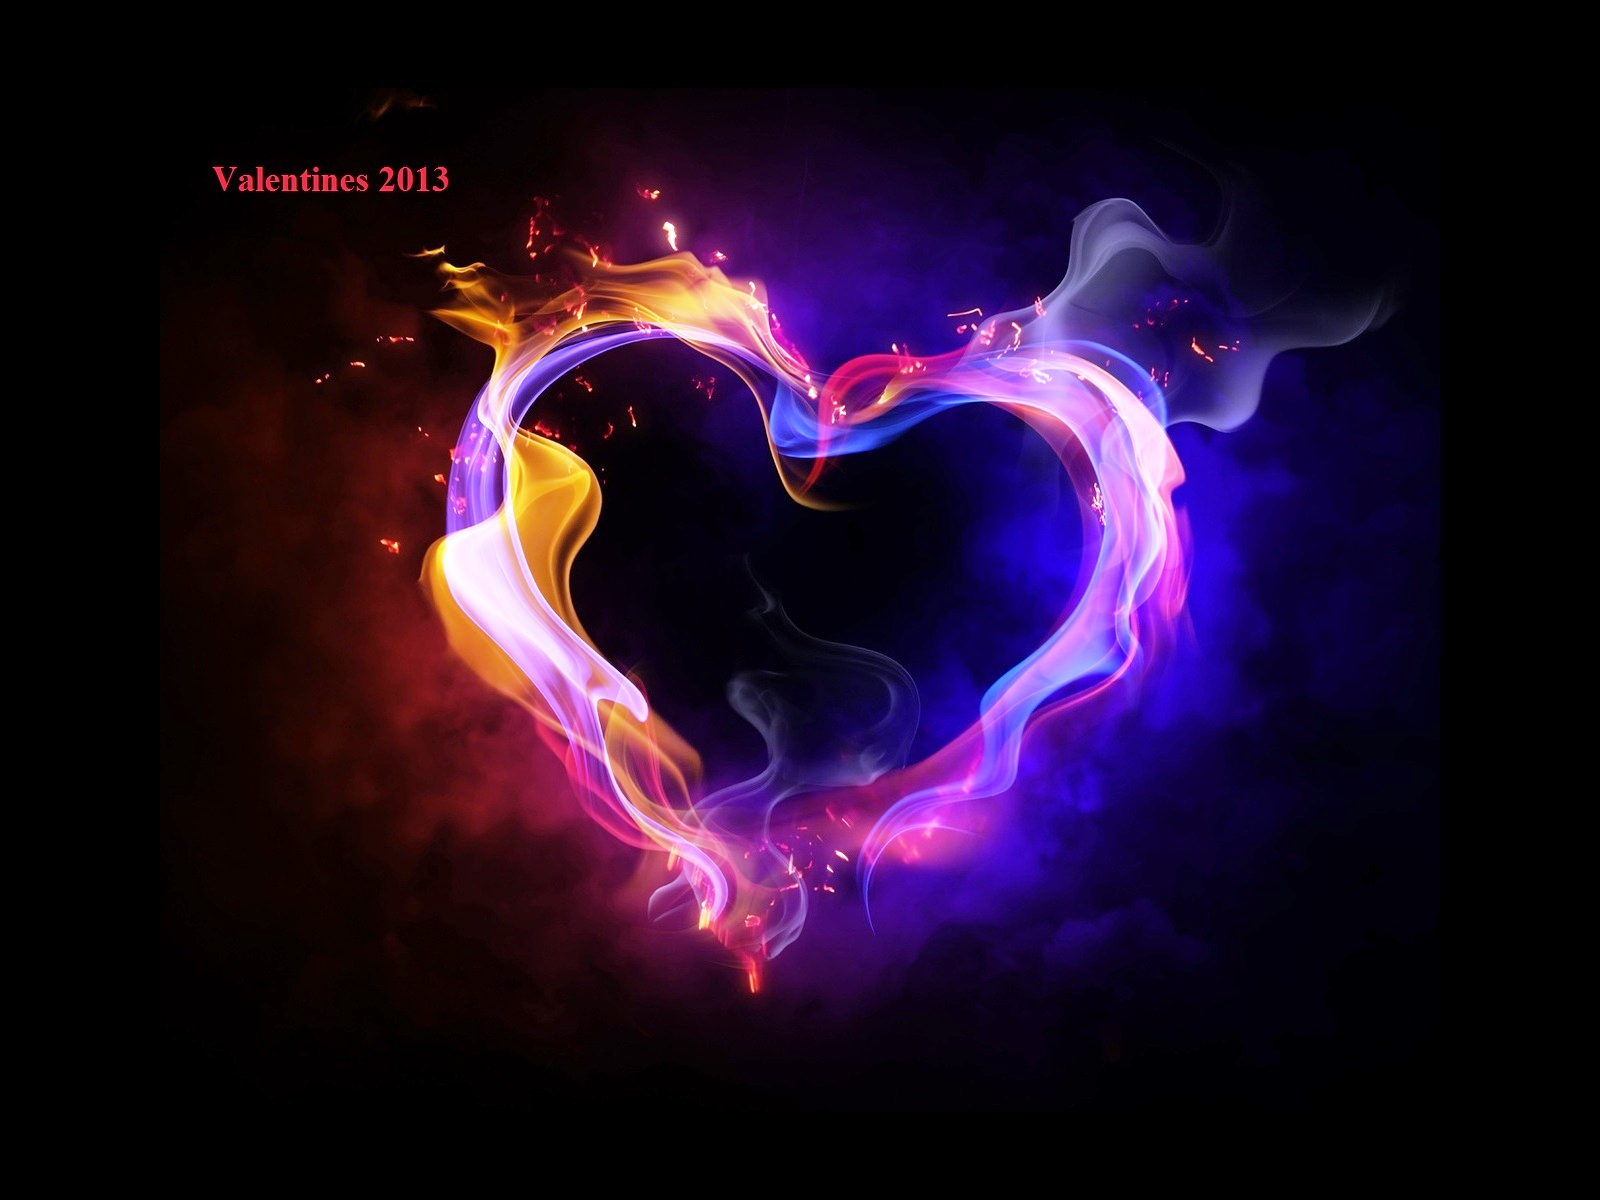 VALENTINES DAY 2013 HD WALLPAPERS